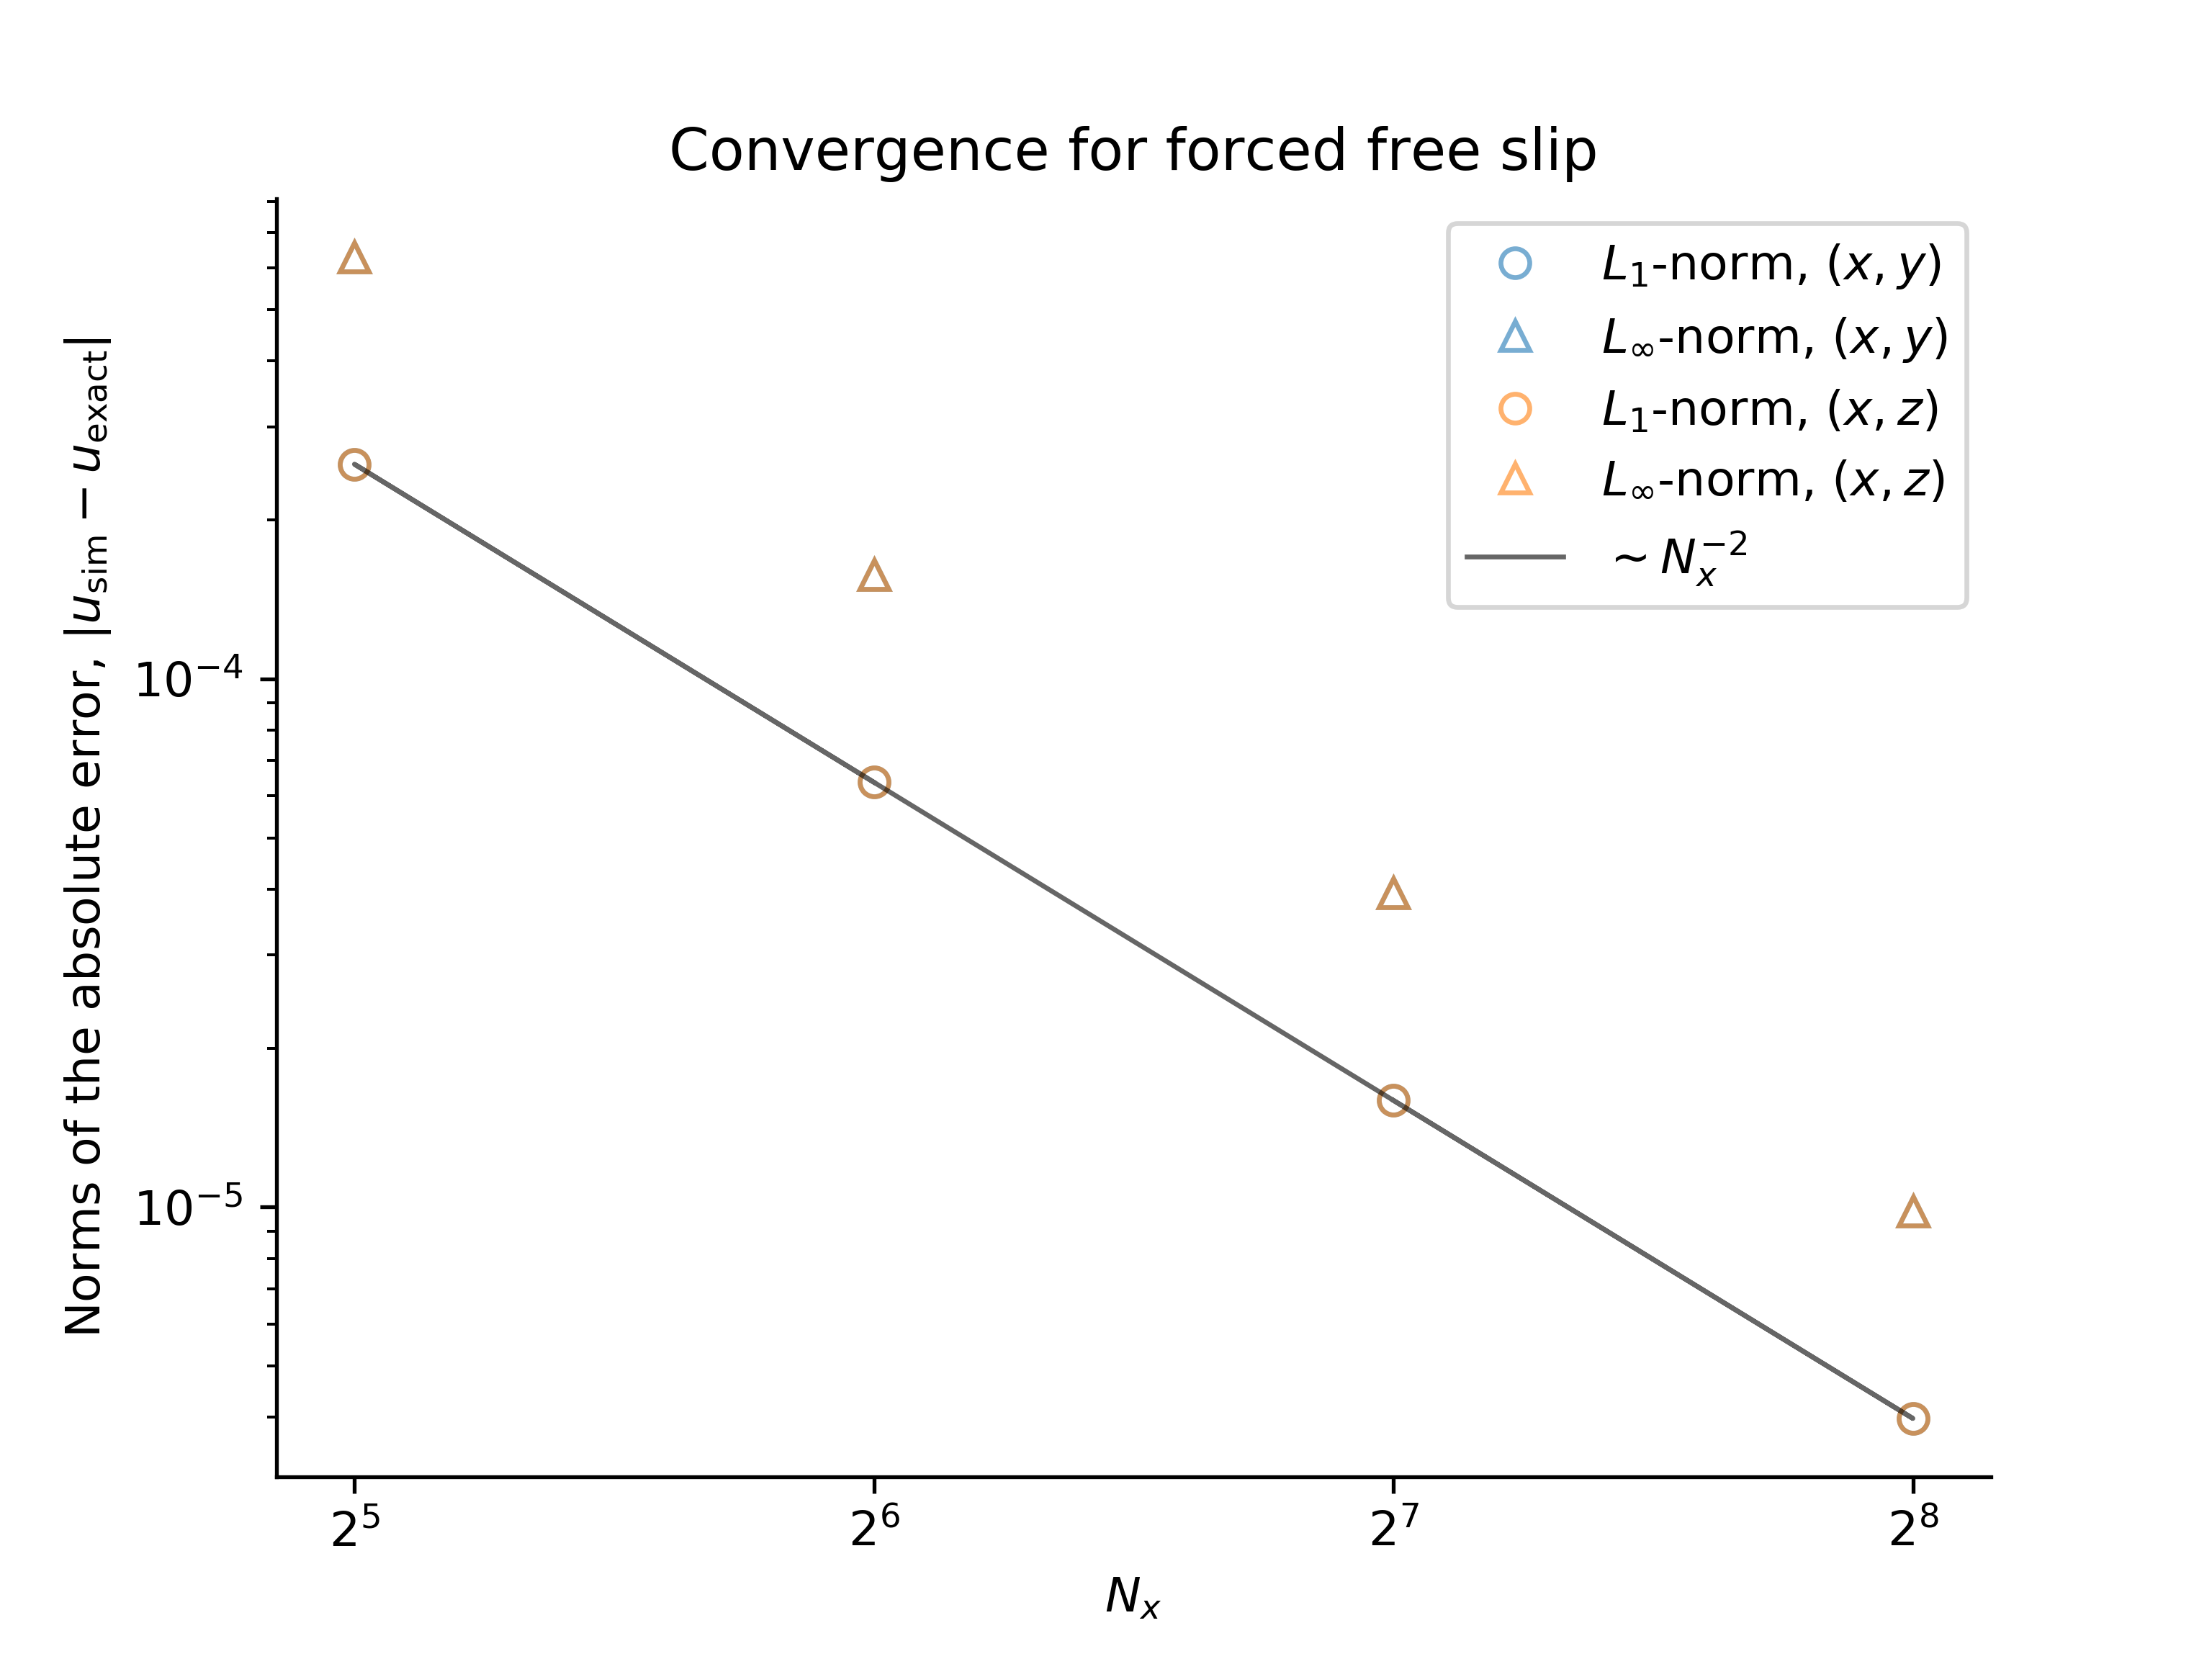 Forced free slip convergence